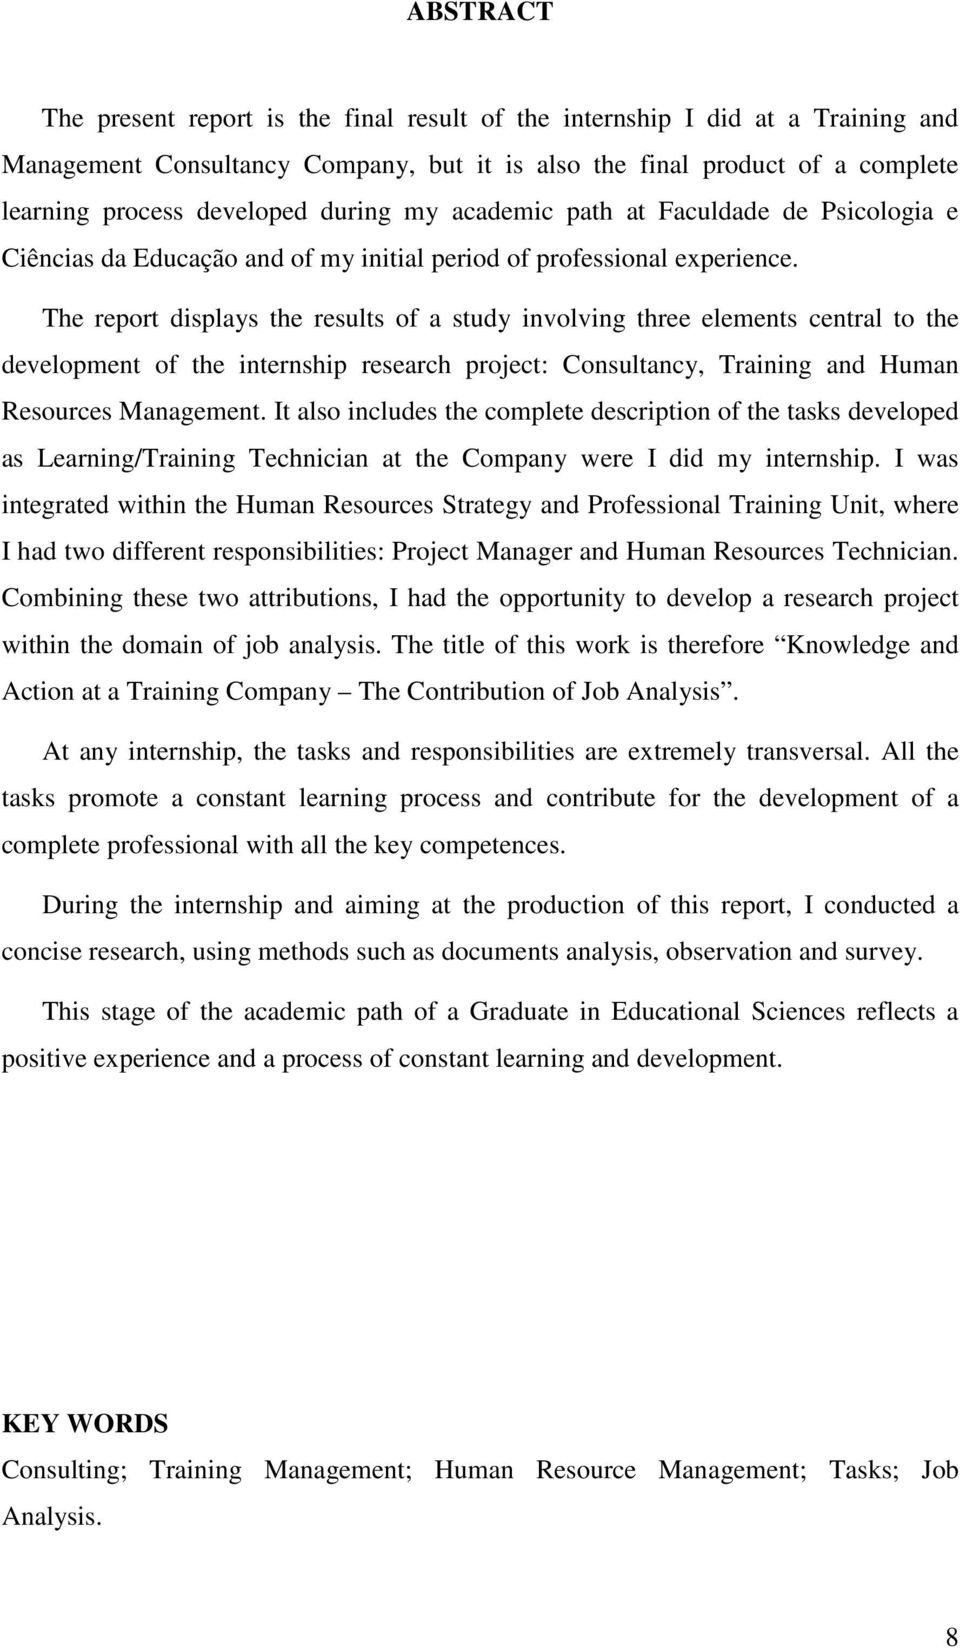 The report displays the results of a study involving three elements central to the development of the internship research project: Consultancy, Training and Human Resources Management.